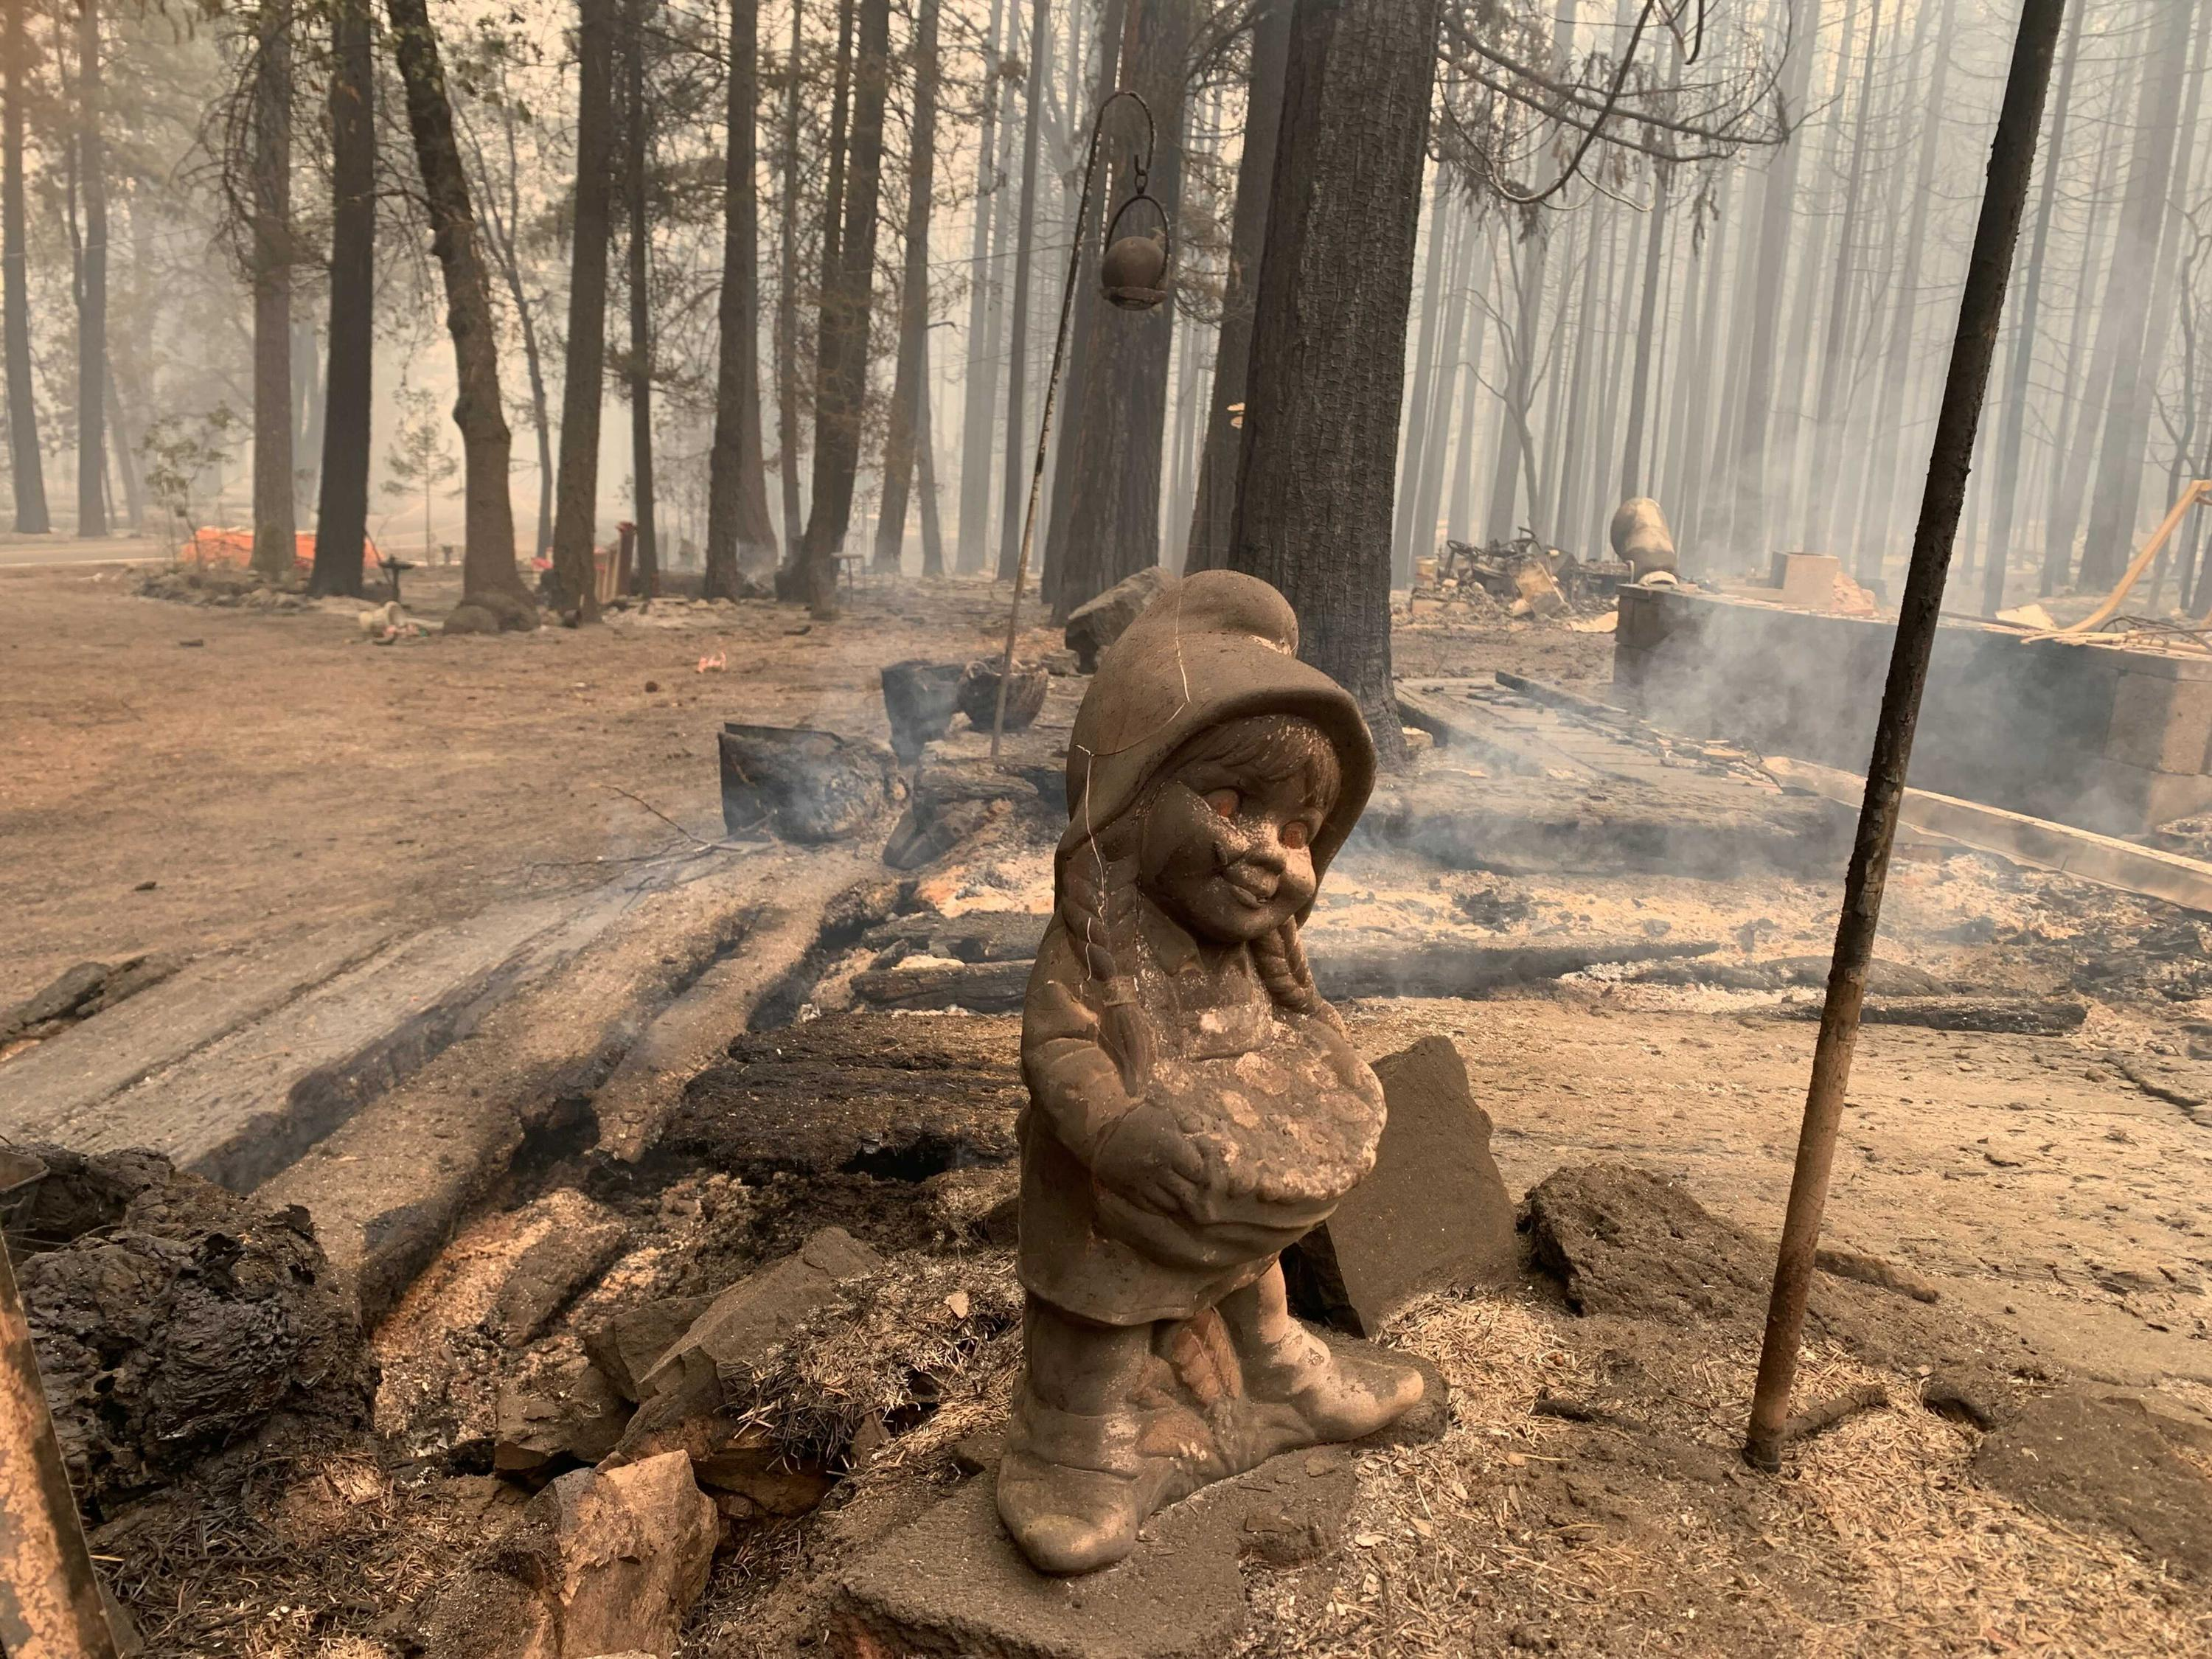 QUINCY, Calif. (AP) — Firefighters battling flames in Northern California forests girded Monday for new bouts of windy weather, and a utility warned